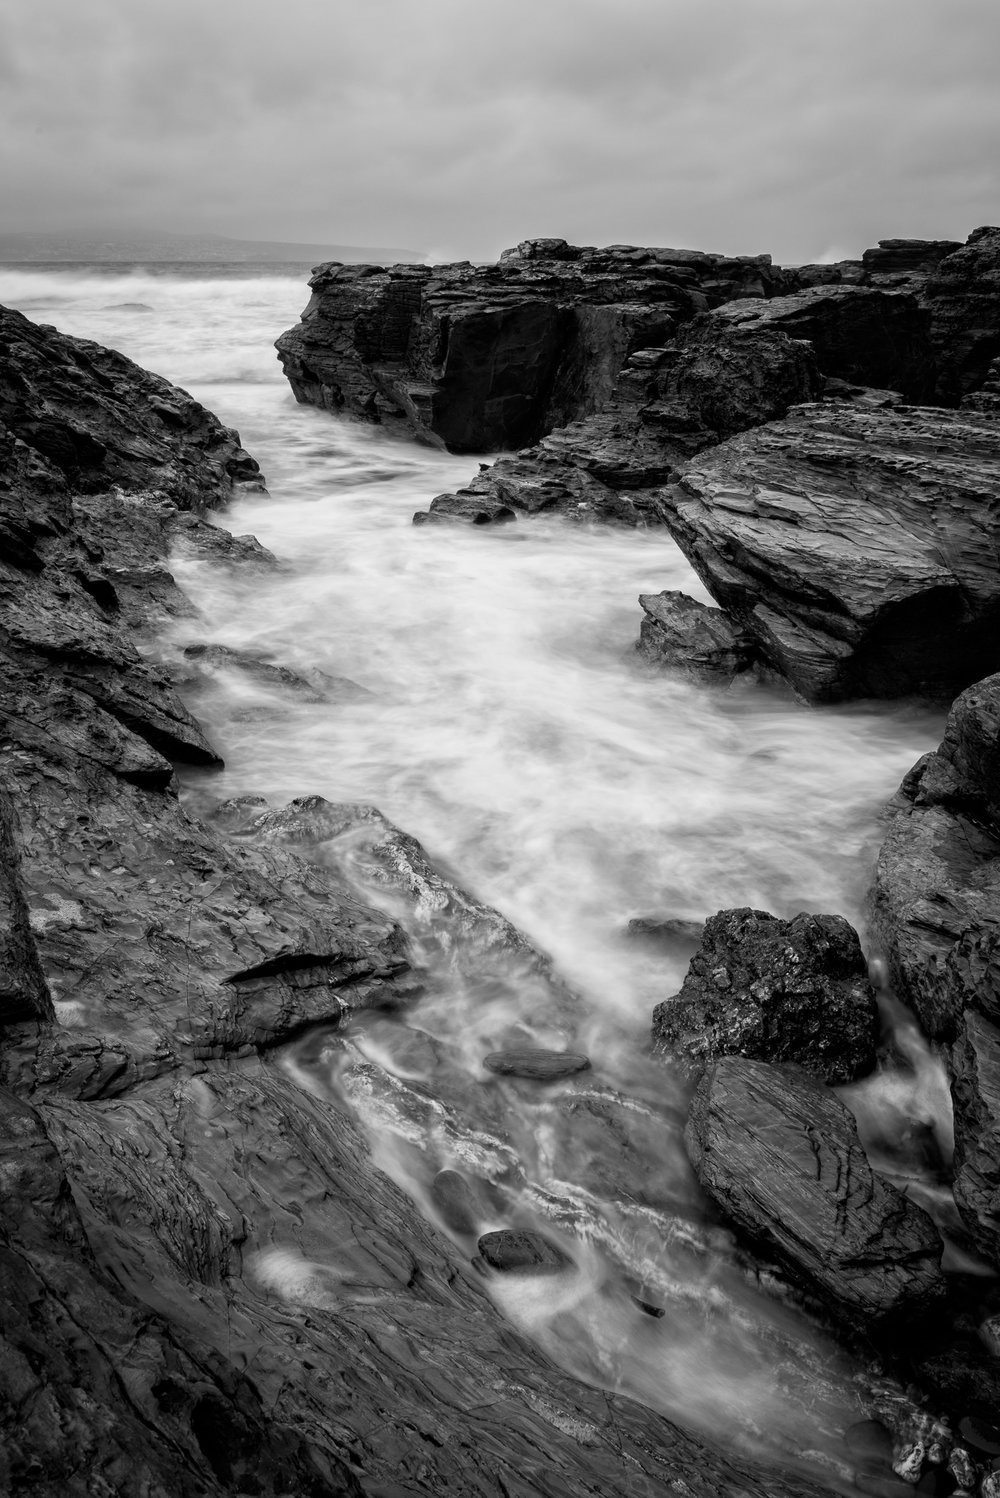 Godrevy Cove, Cornwall